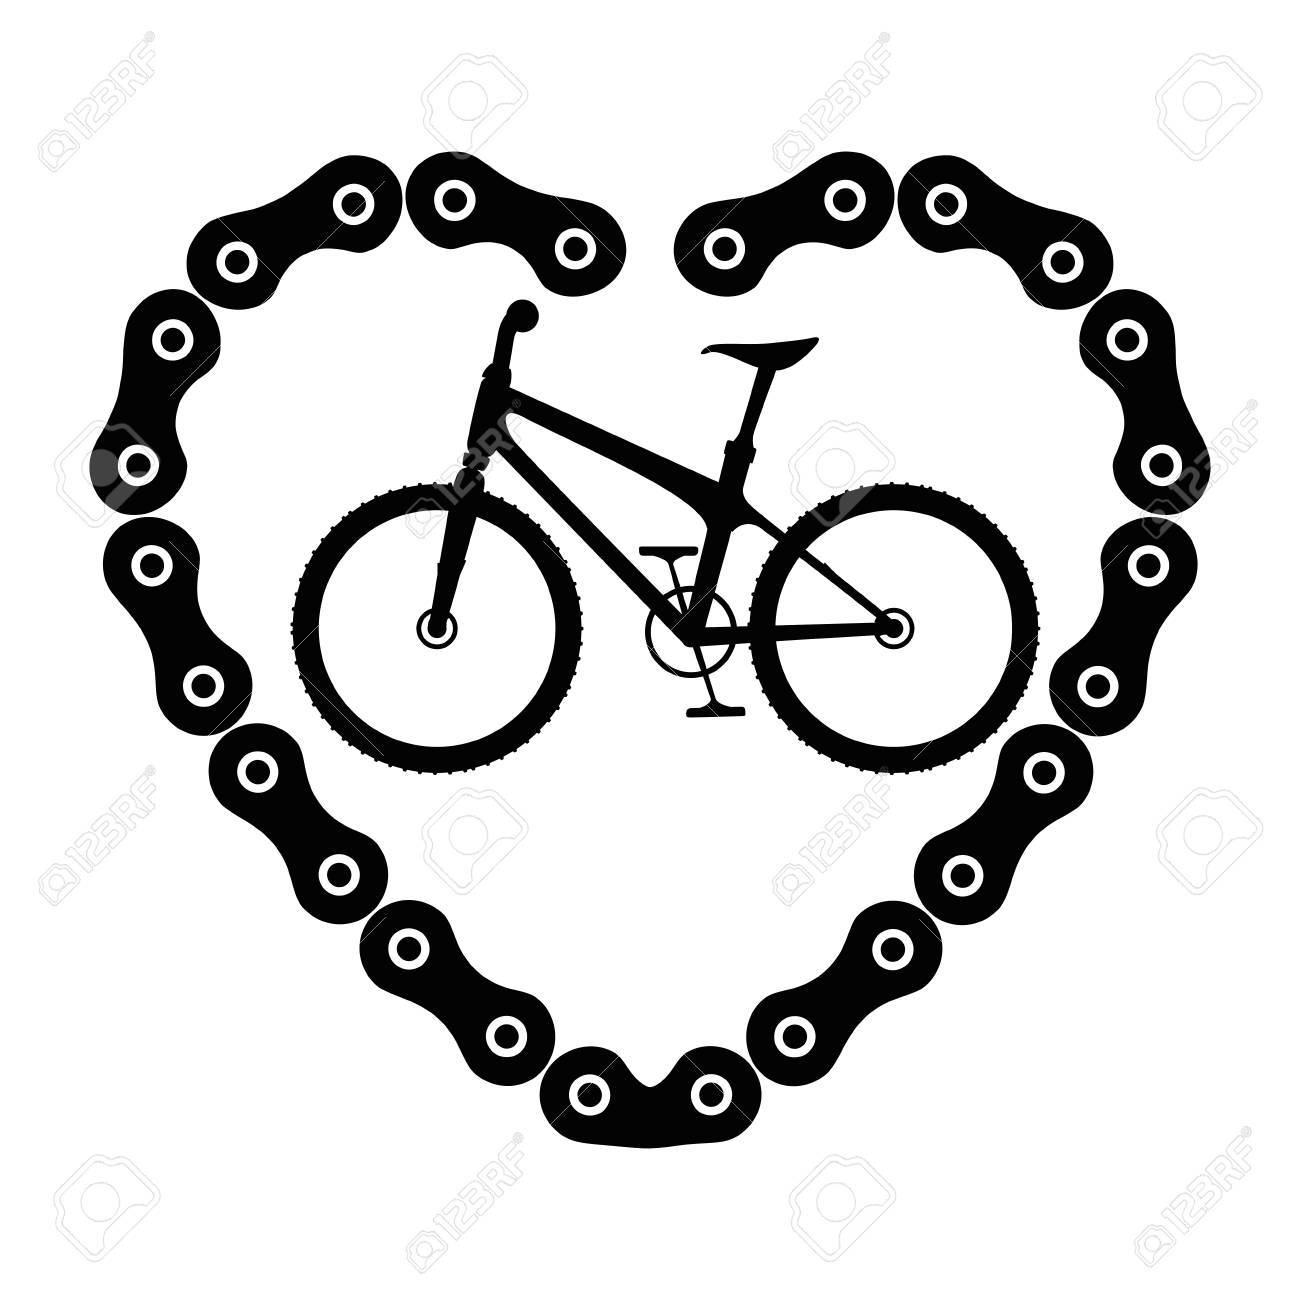 1300x1300 Bicycle Vehicle With Heart Chain Vector Illustration Design